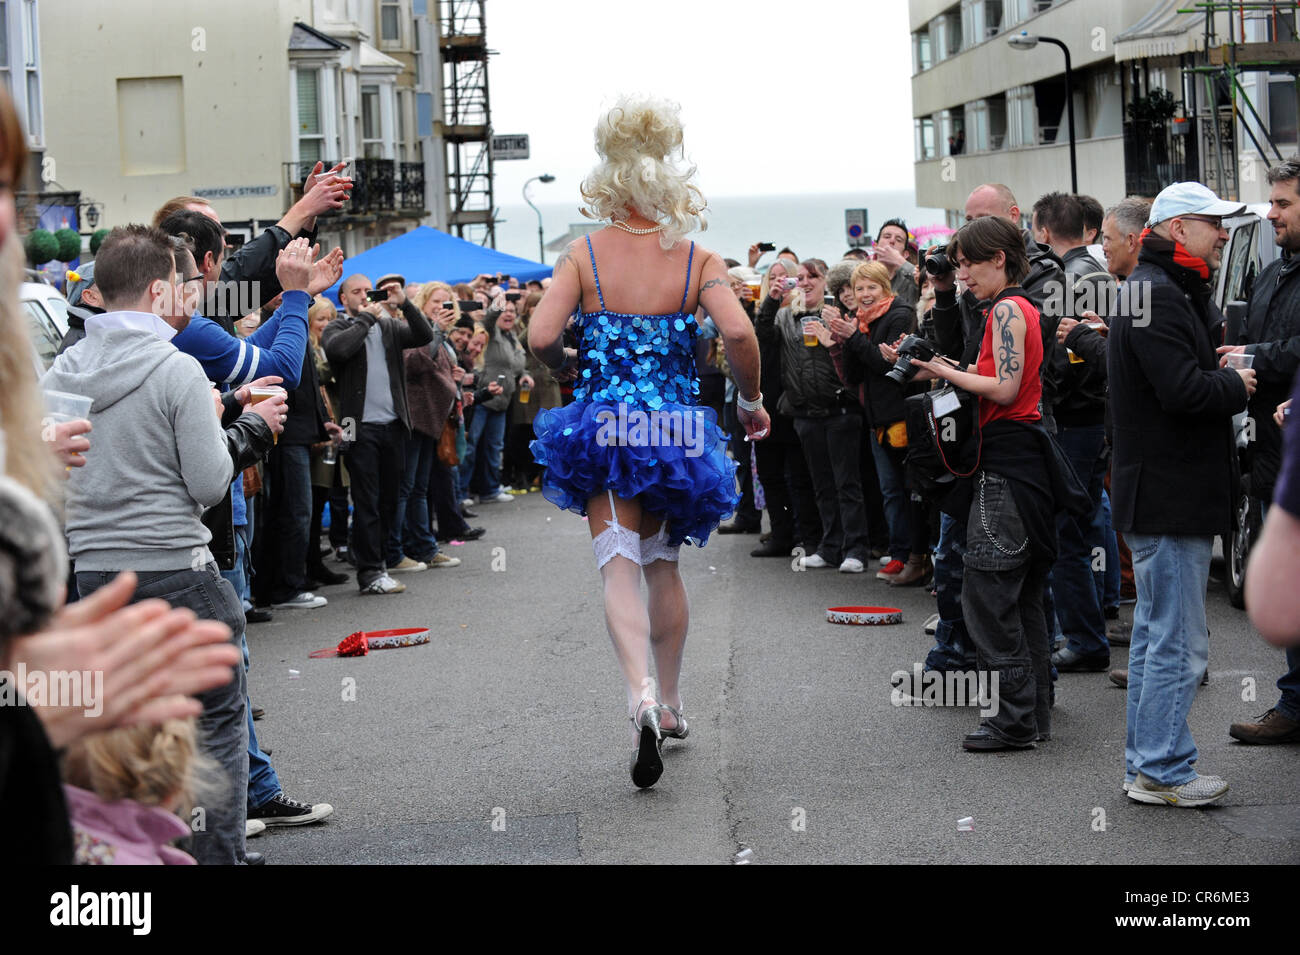 Easter Drag Queen race in Western St Brighton to raise cash for local charities - Stock Image